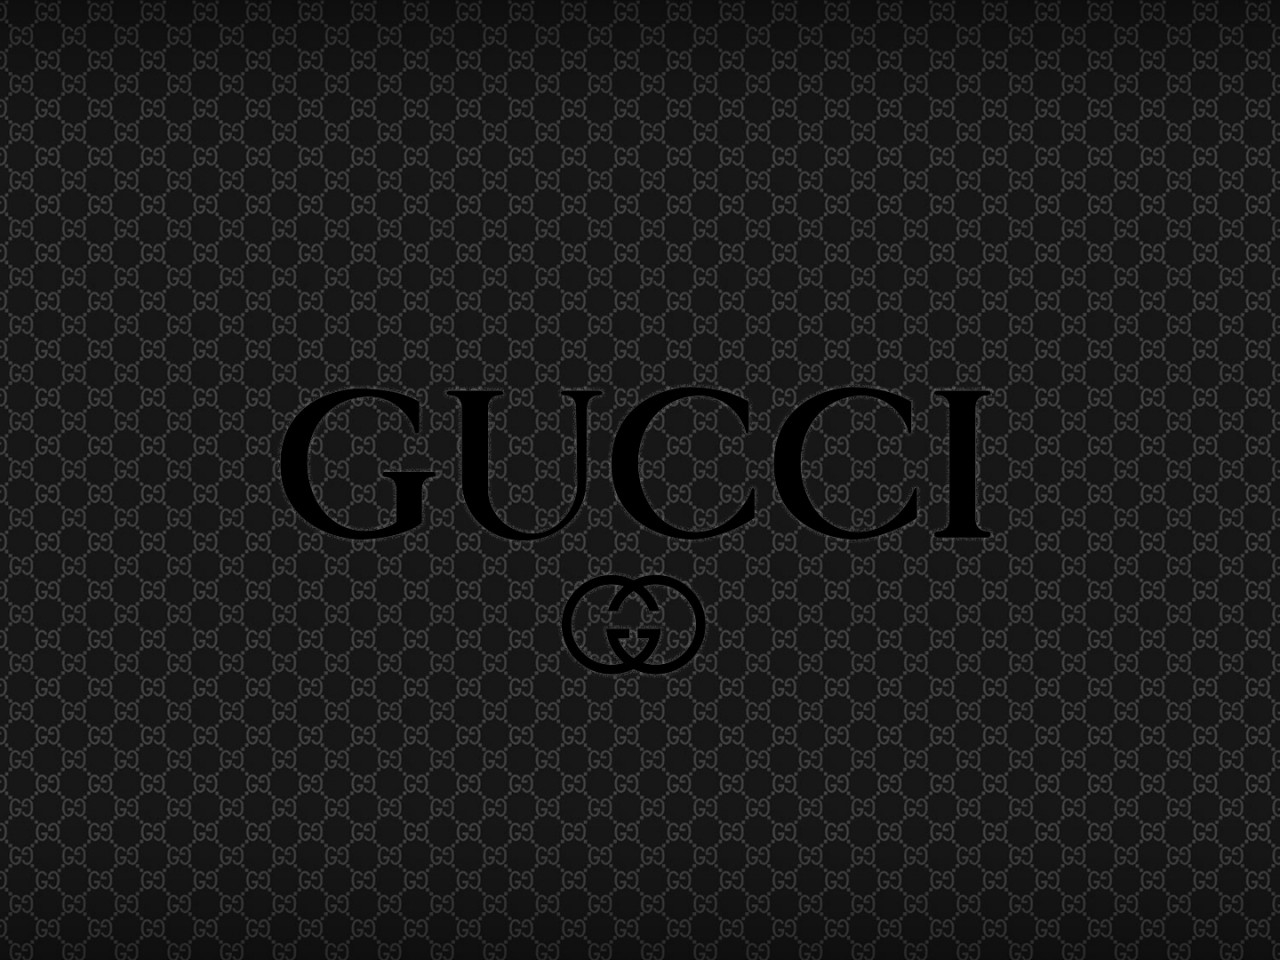 Gucci Logo Wallpaper Images amp Pictures   Becuo 1280x960